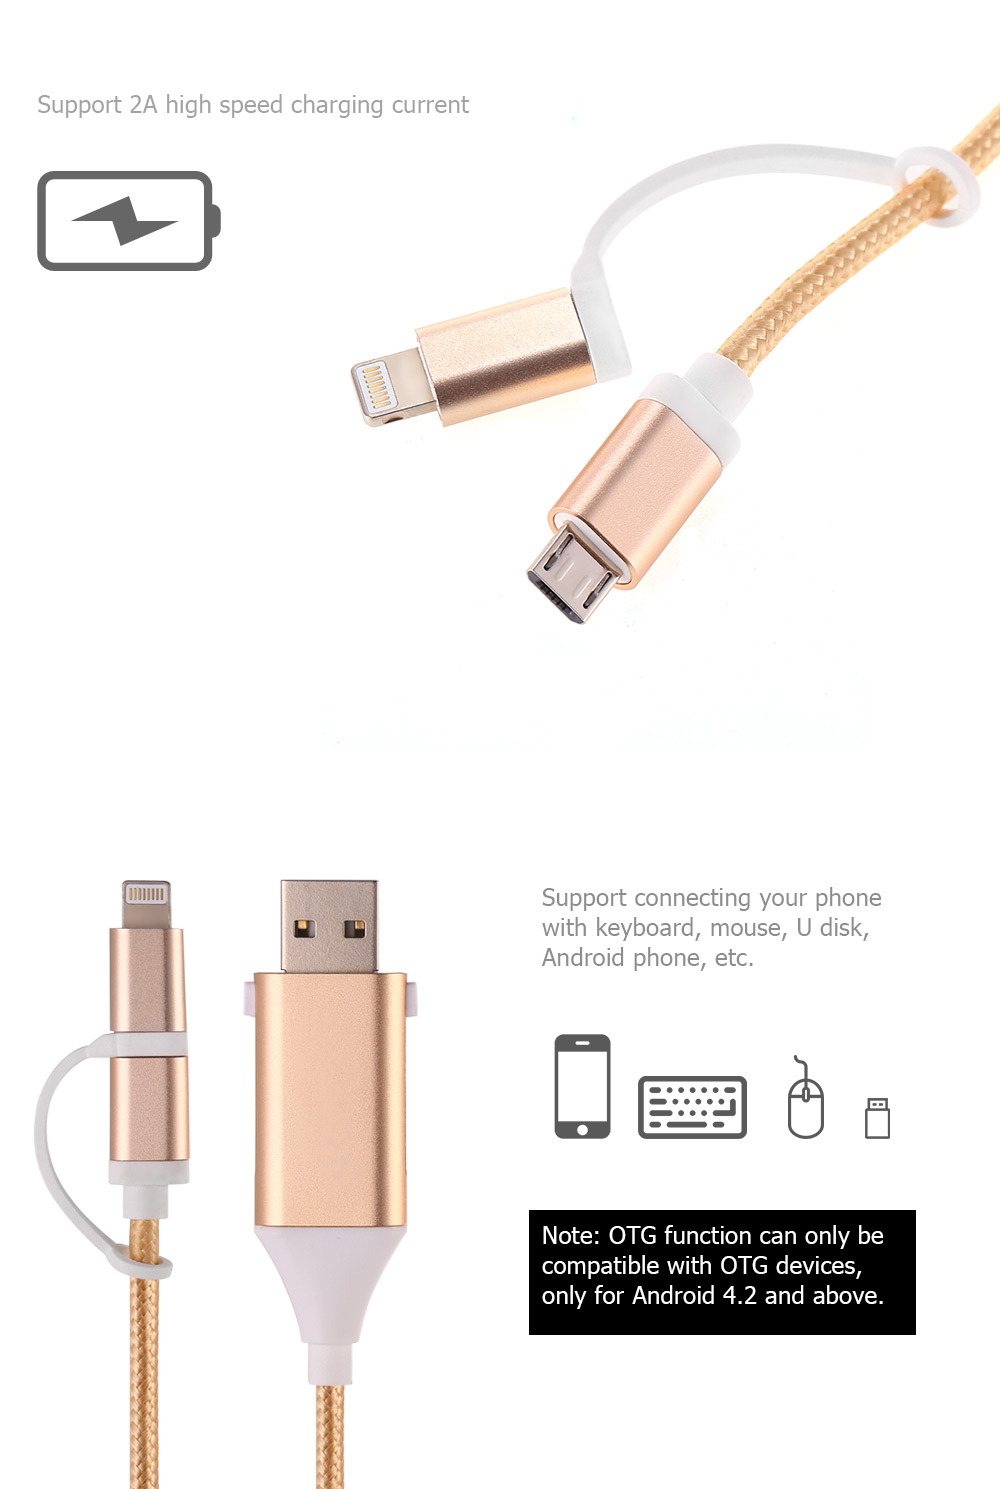 Mimao USB OTG 2-in-1 Cable Data Sync Charging Cord 8 Pin Micro USB Connector - 1m